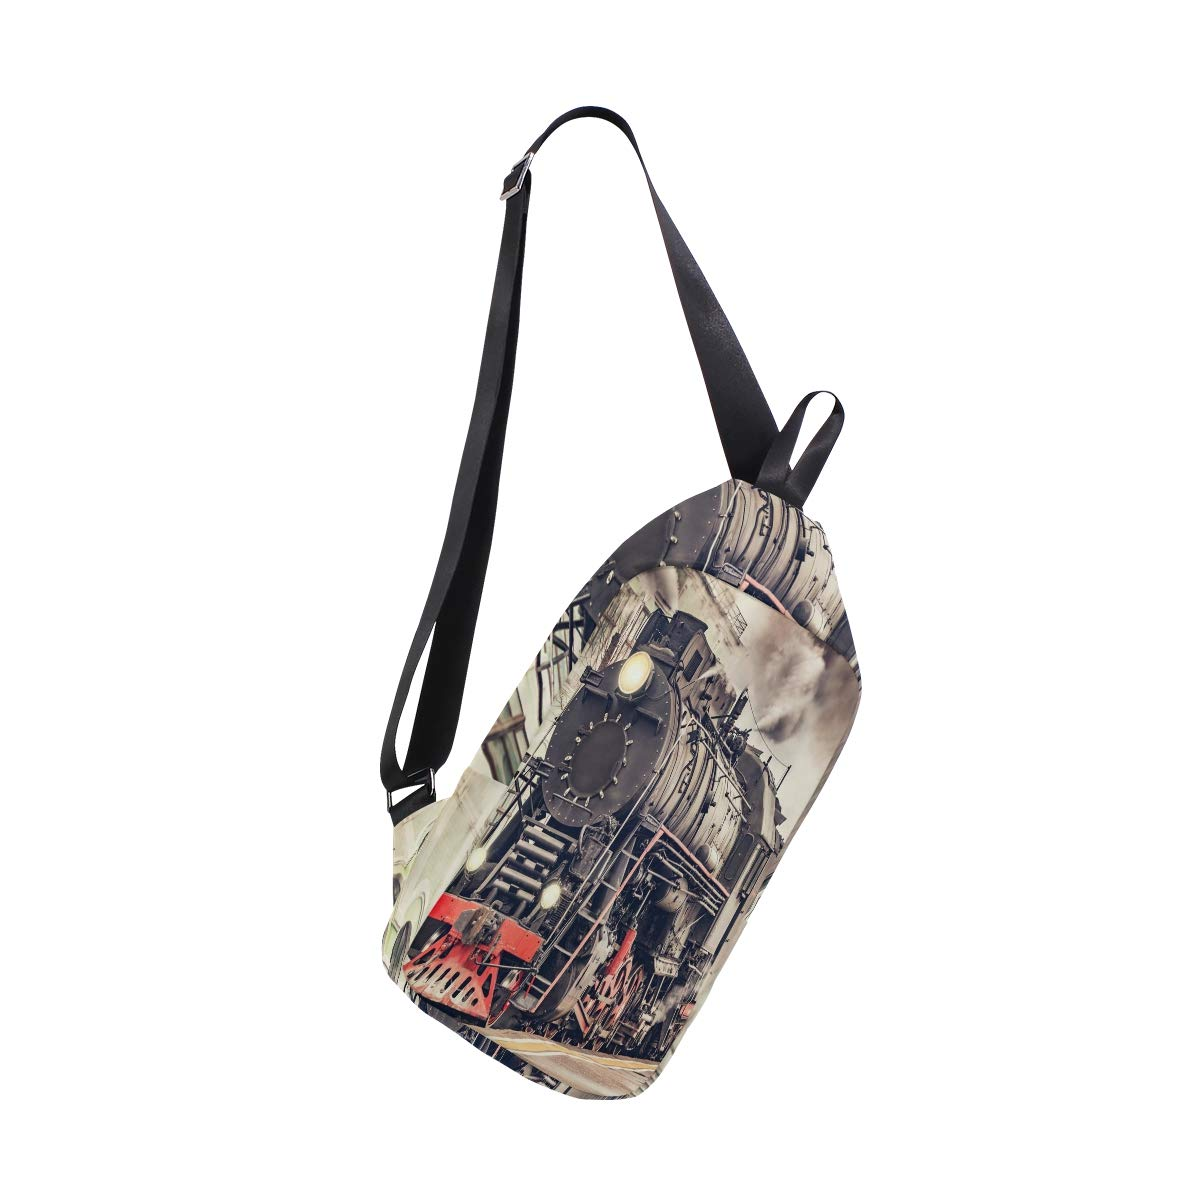 TFONE Vintage Steam Train Crossbody Bag Lightweight Chest Shoulder Messenger Pack Backpack Sling Bag